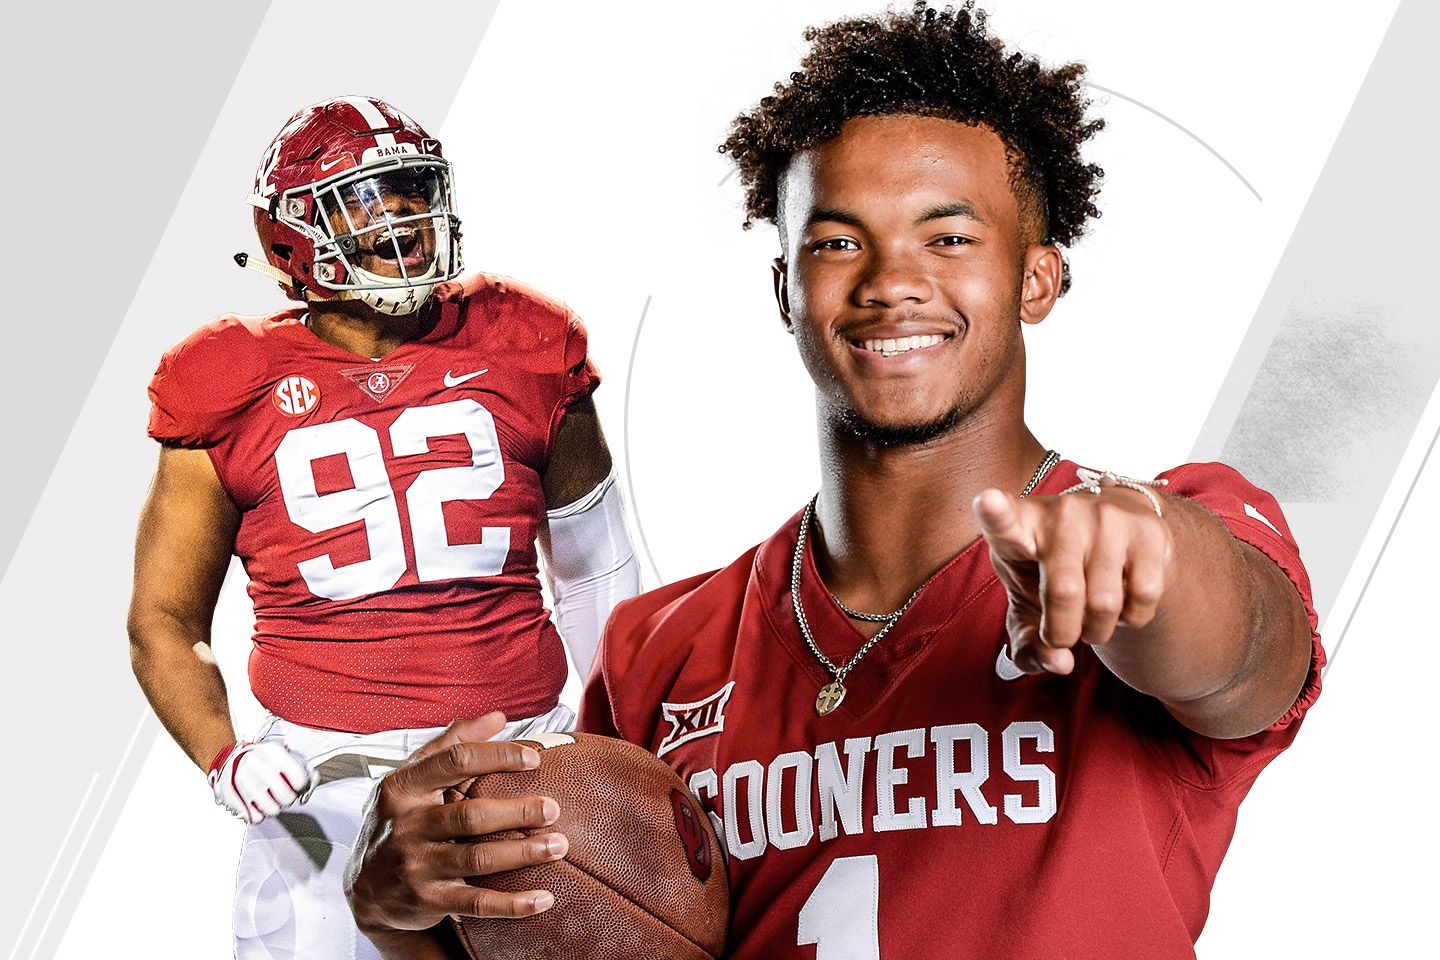 Kyler Murray and Quinnen Williams lead this year's college football All-America team. Who else made the cut?